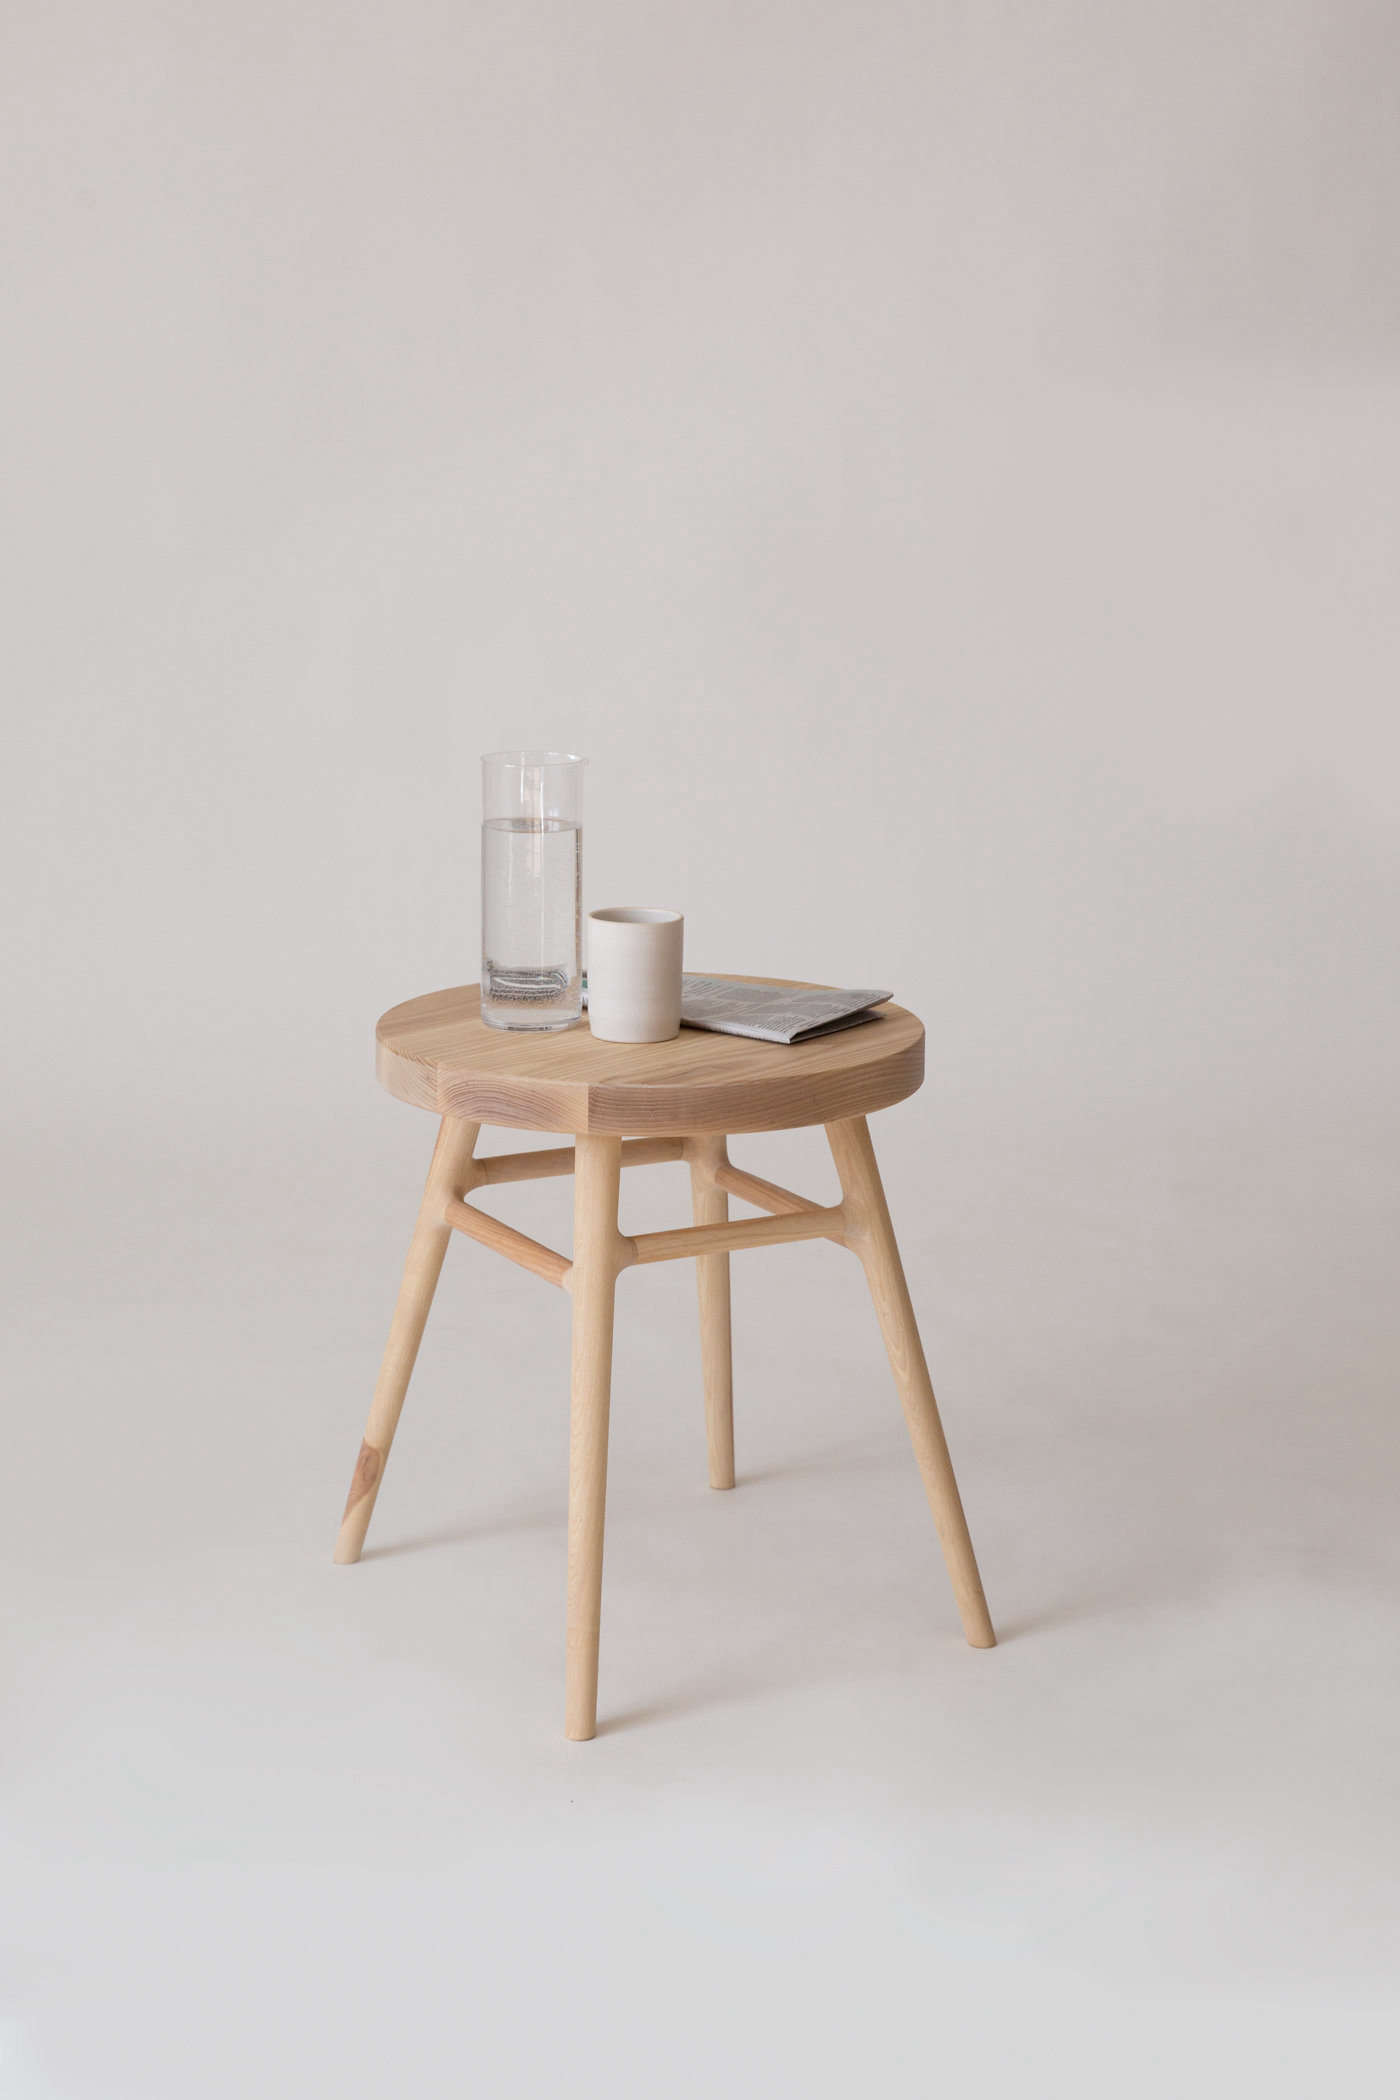 The Bough Stool makes for a sleek end seat or side table. It's $950 and measures 18 inches high.